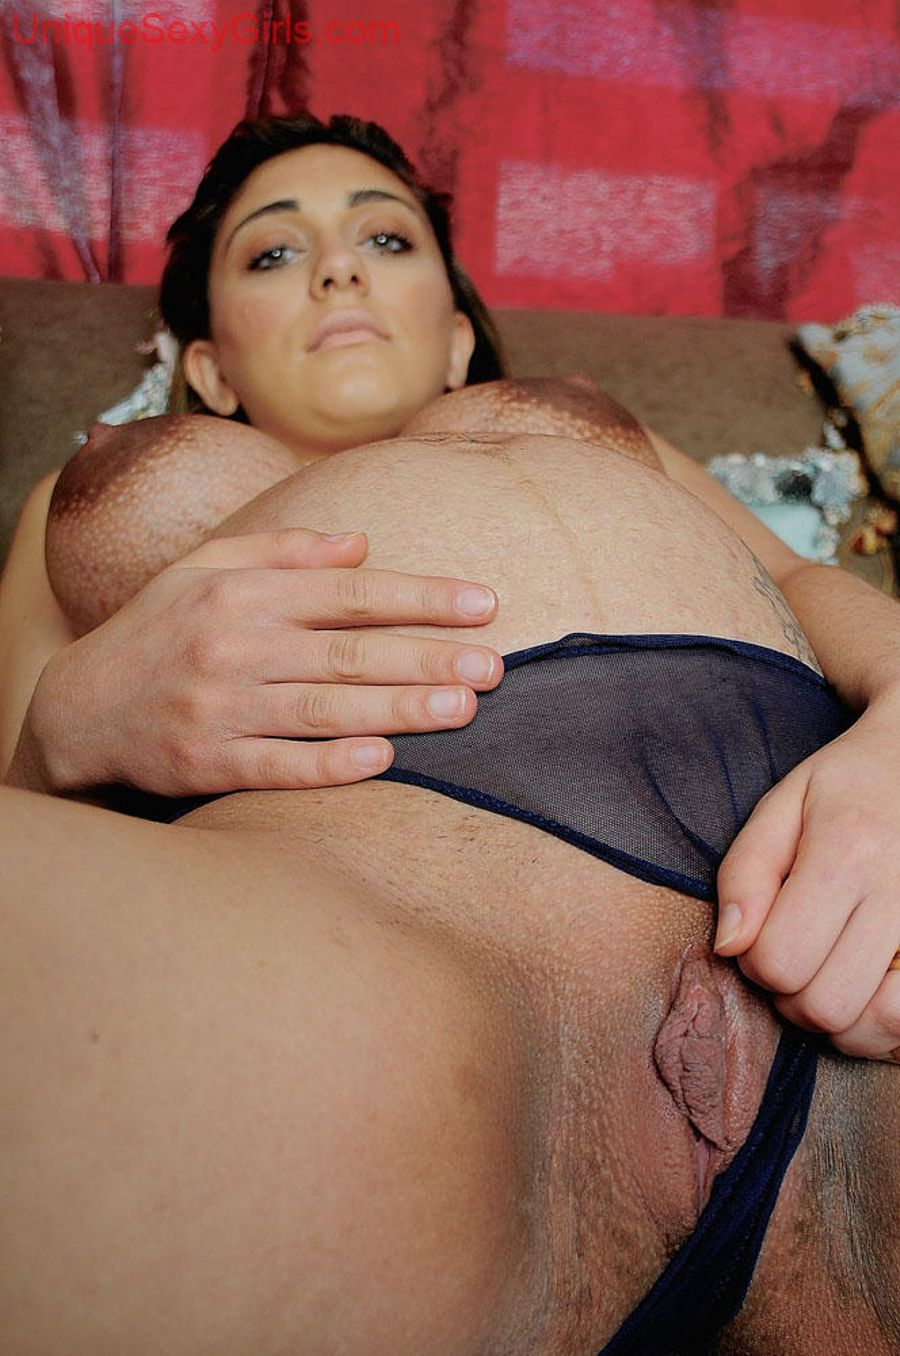 title: pregnant arab with large aureoles posing photo gallery: porn